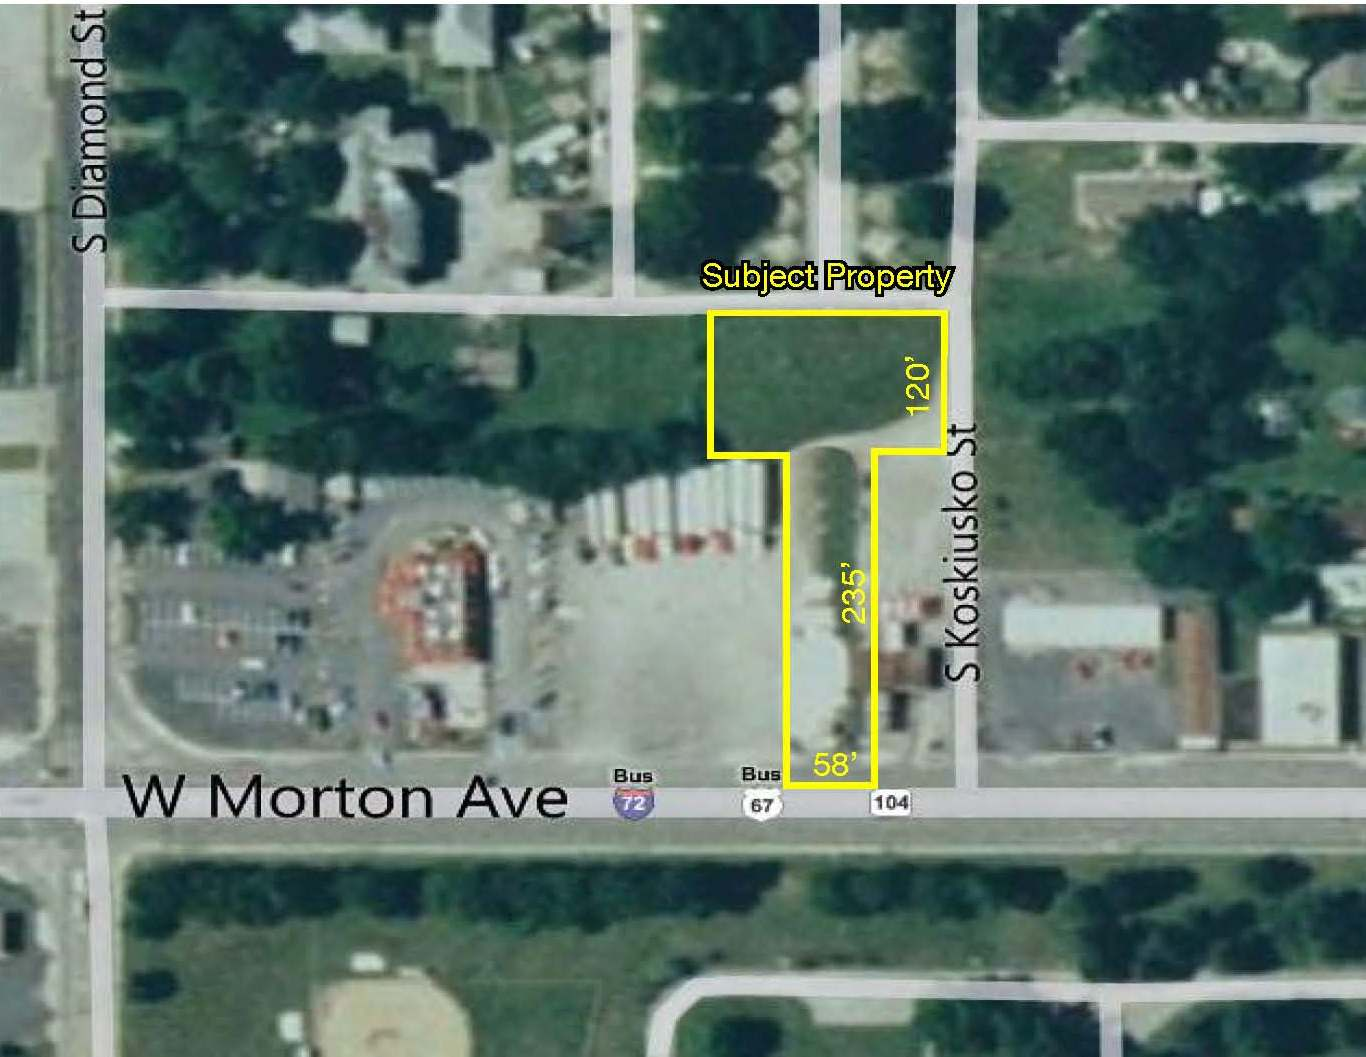 Commercial Property For Lease Jacksonville Il